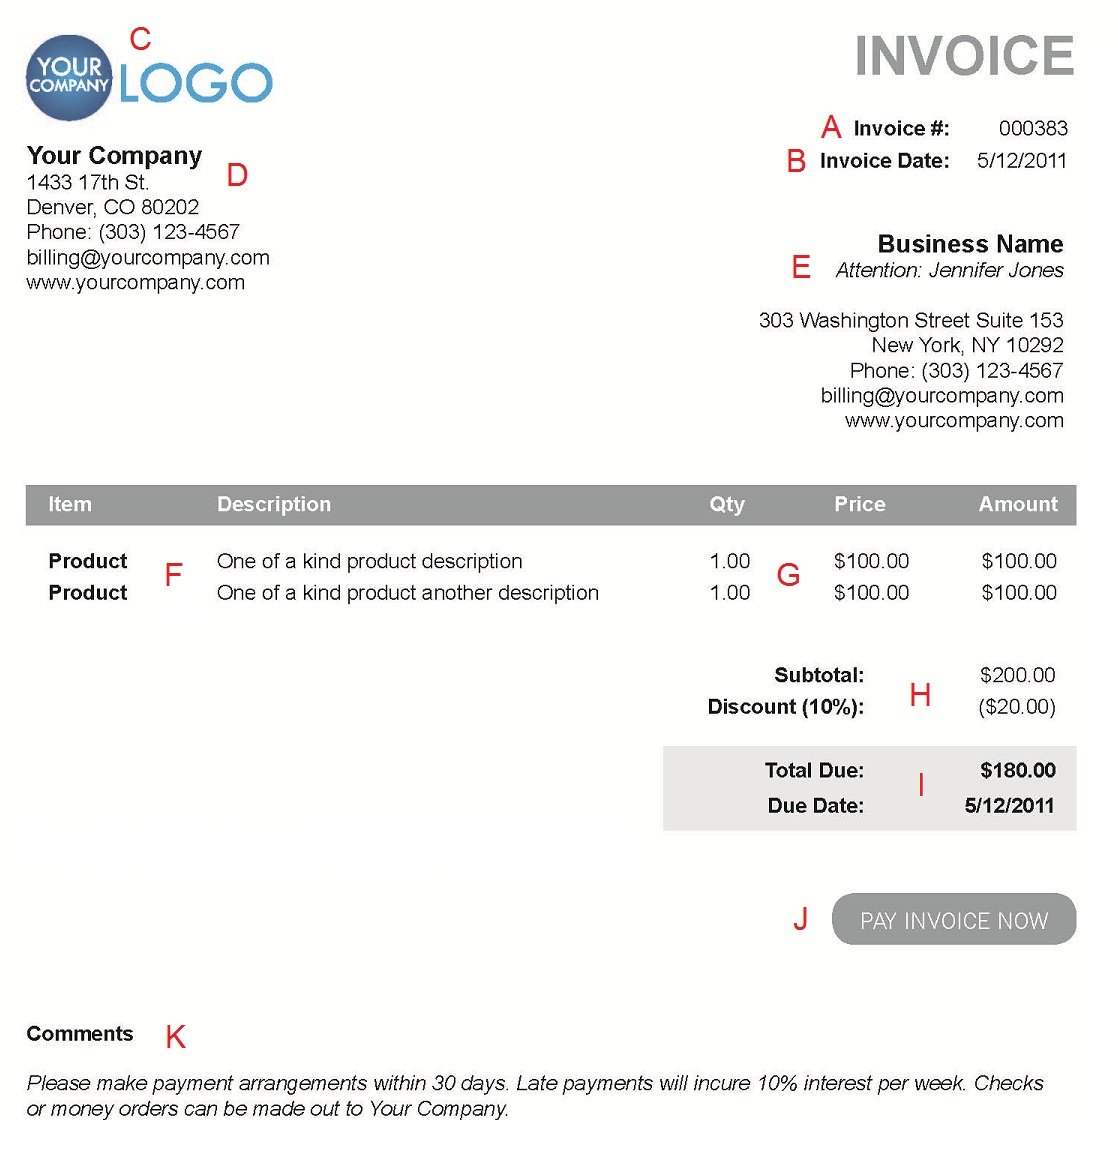 Ebitus  Terrific The  Different Sections Of An Electronic Payment Invoice With Great A  With Astounding Free Invoice Template Printable Also Invoice For Payment Template In Addition Off Invoice Discount And Product Invoice Template As Well As Free Printable Blank Invoice Additionally Ups Commercial Invoice Template From Paysimplecom With Ebitus  Great The  Different Sections Of An Electronic Payment Invoice With Astounding A  And Terrific Free Invoice Template Printable Also Invoice For Payment Template In Addition Off Invoice Discount From Paysimplecom